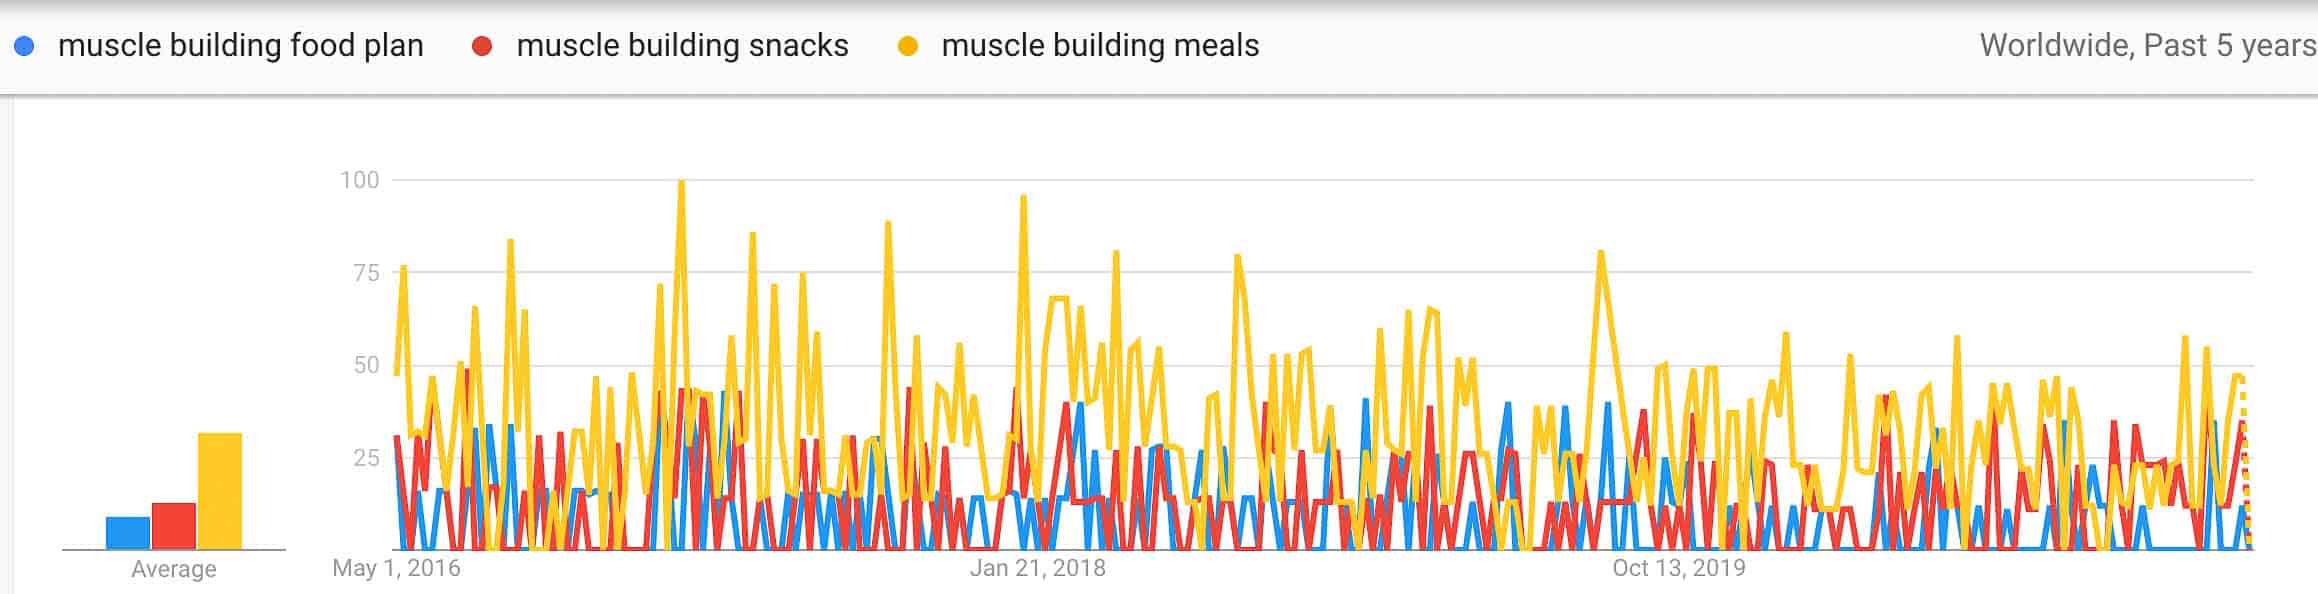 muscle building food trends